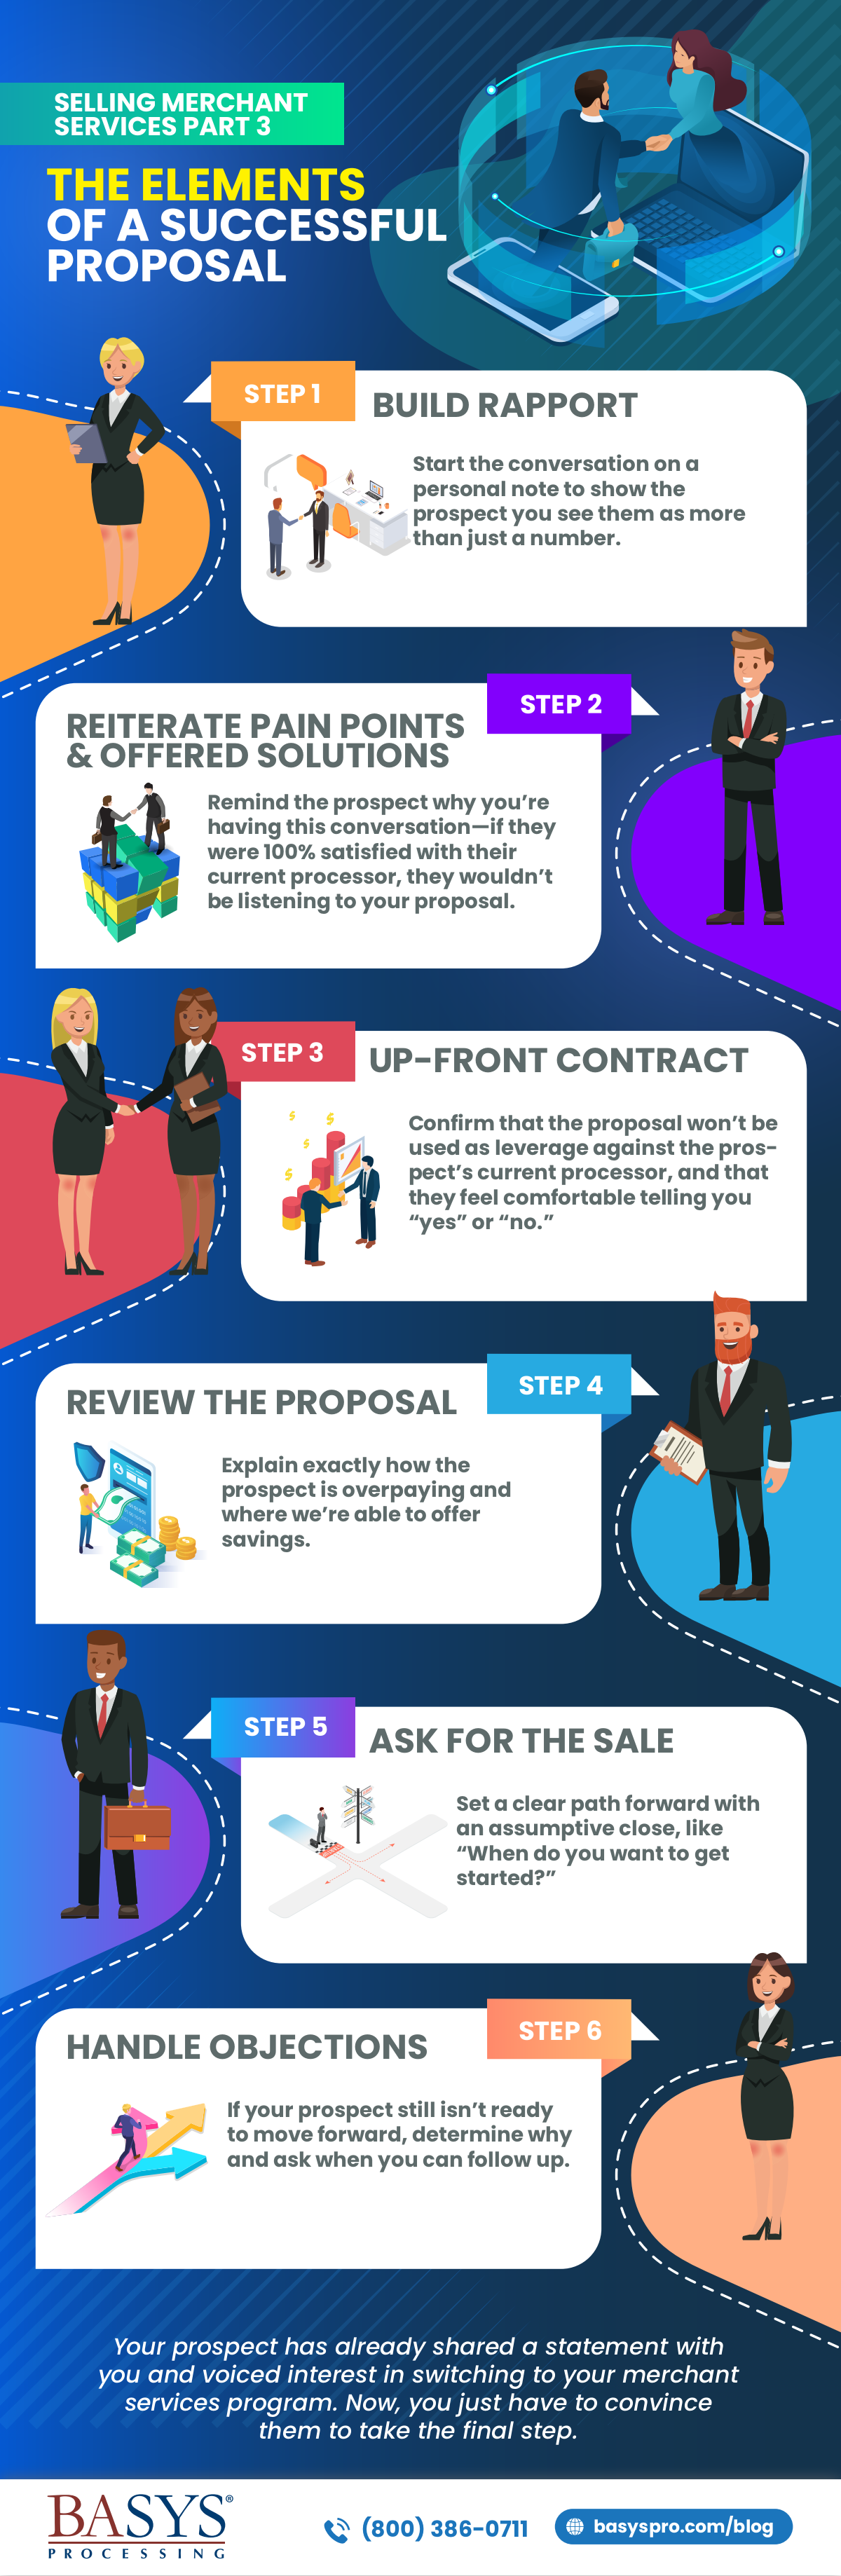 Selling Merchant Services Part 3: The Elements of a Successful Proposal